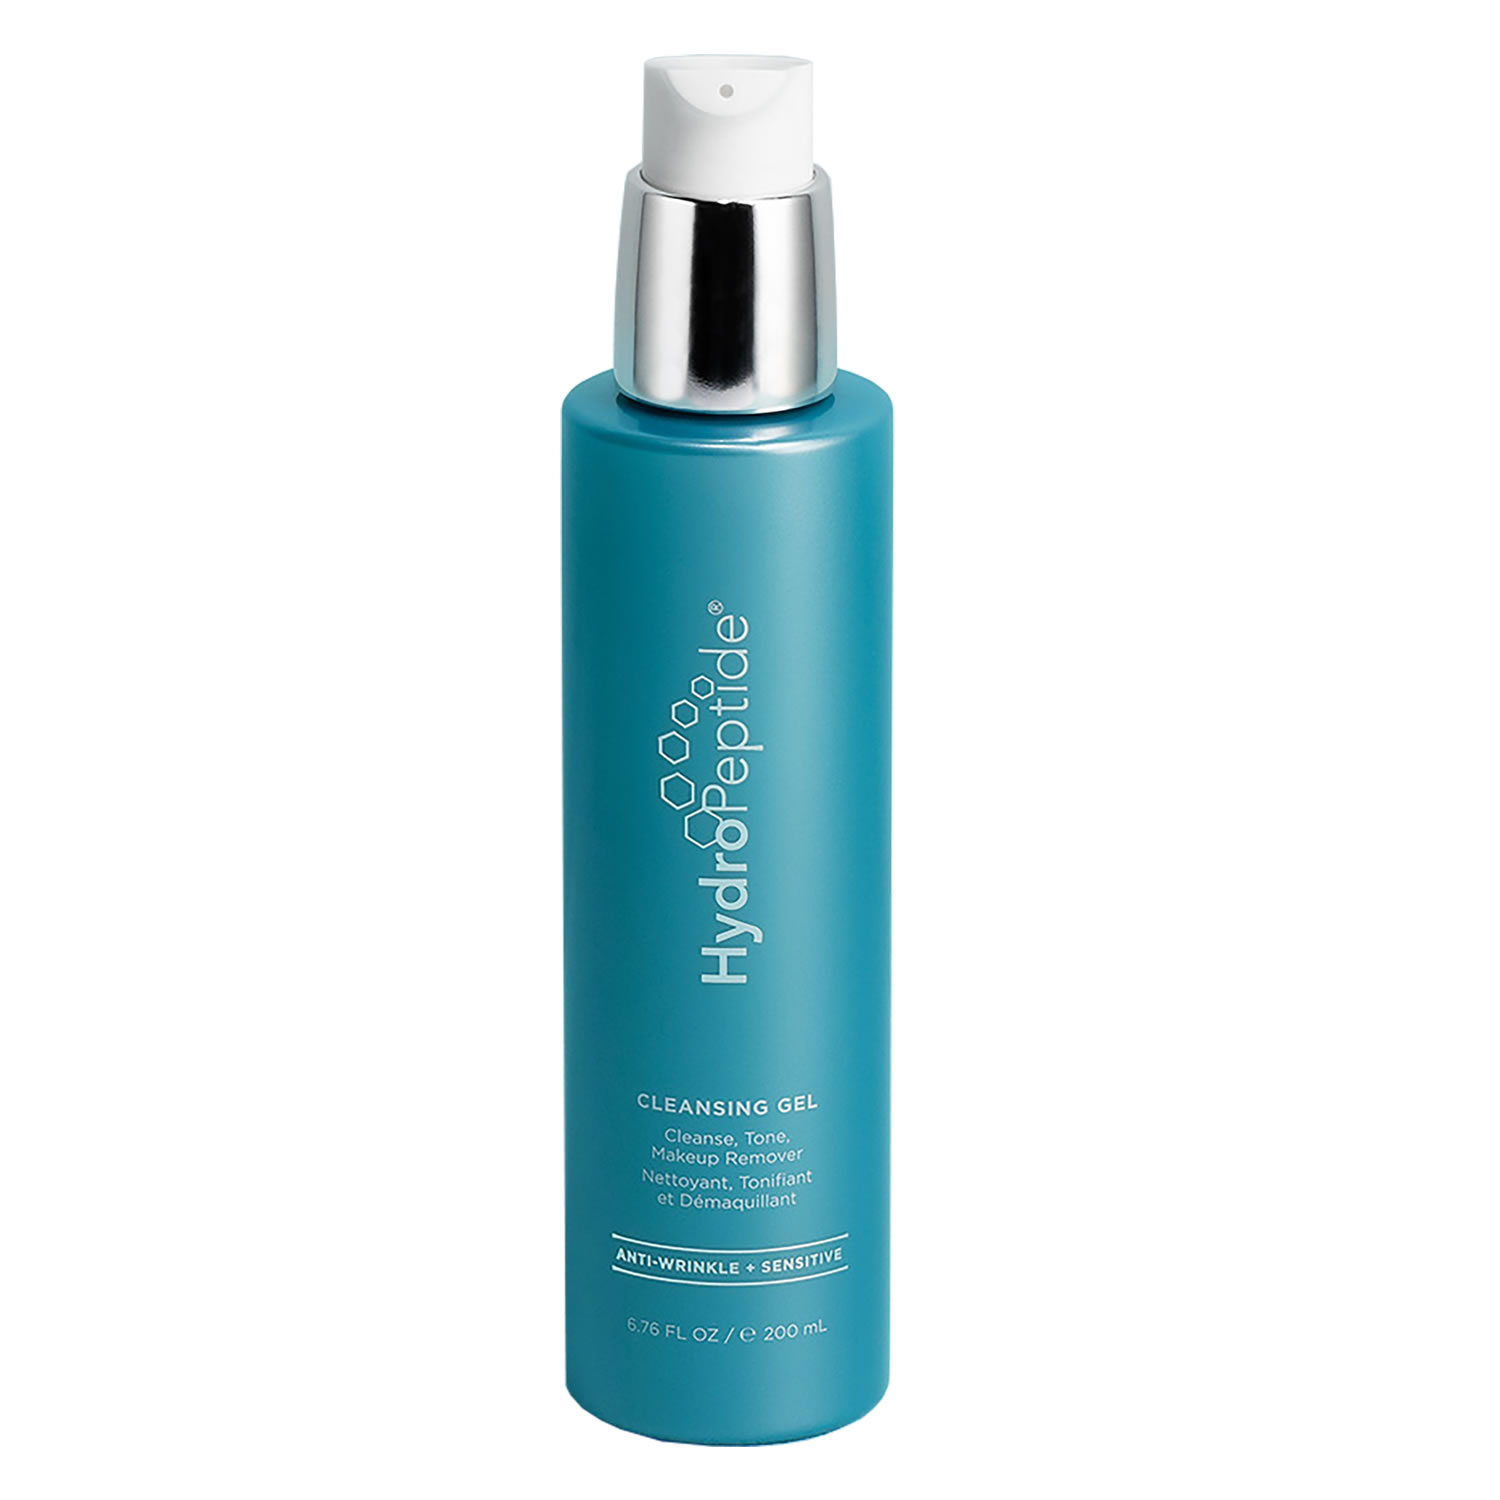 HydroPeptide CLEANSING GEL Cleanse, Tone, Makeup Remover (6.76 fl oz / 200 ml)